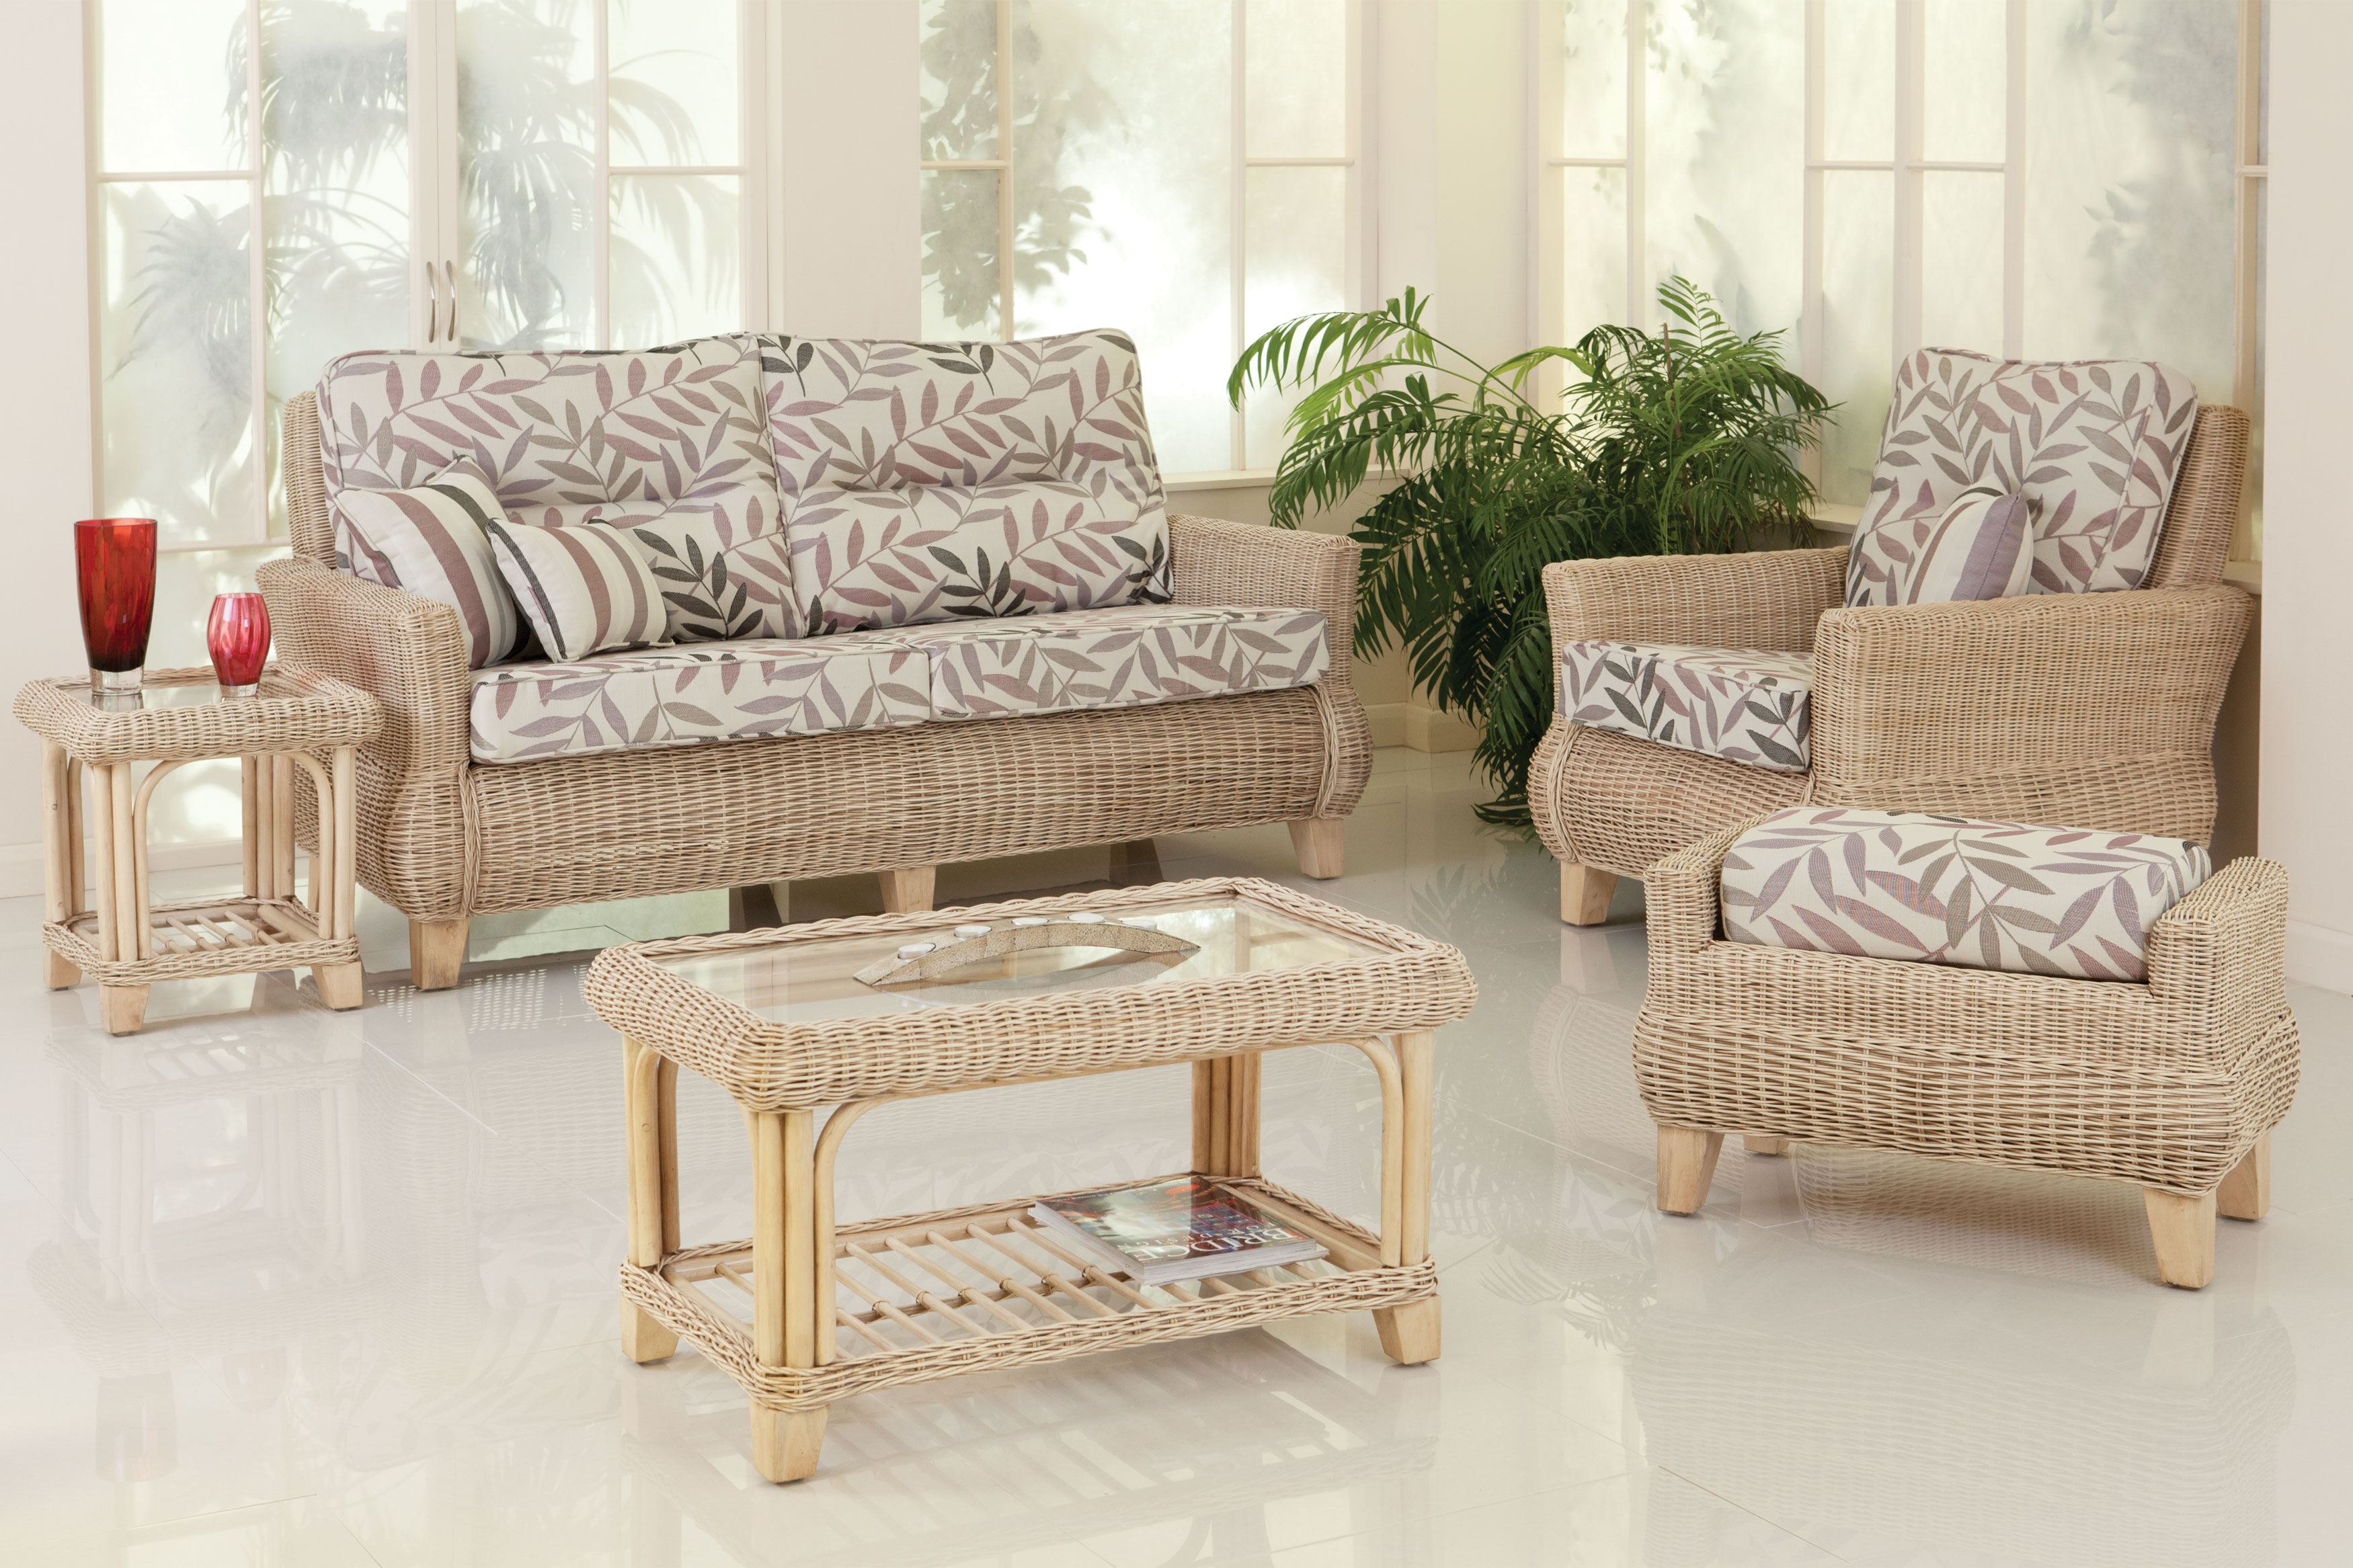 Cane Conservatory Furniture For Indoor And Outdoor Design : Cane Sofas Glass Table White Tile Red Vas Green Plant